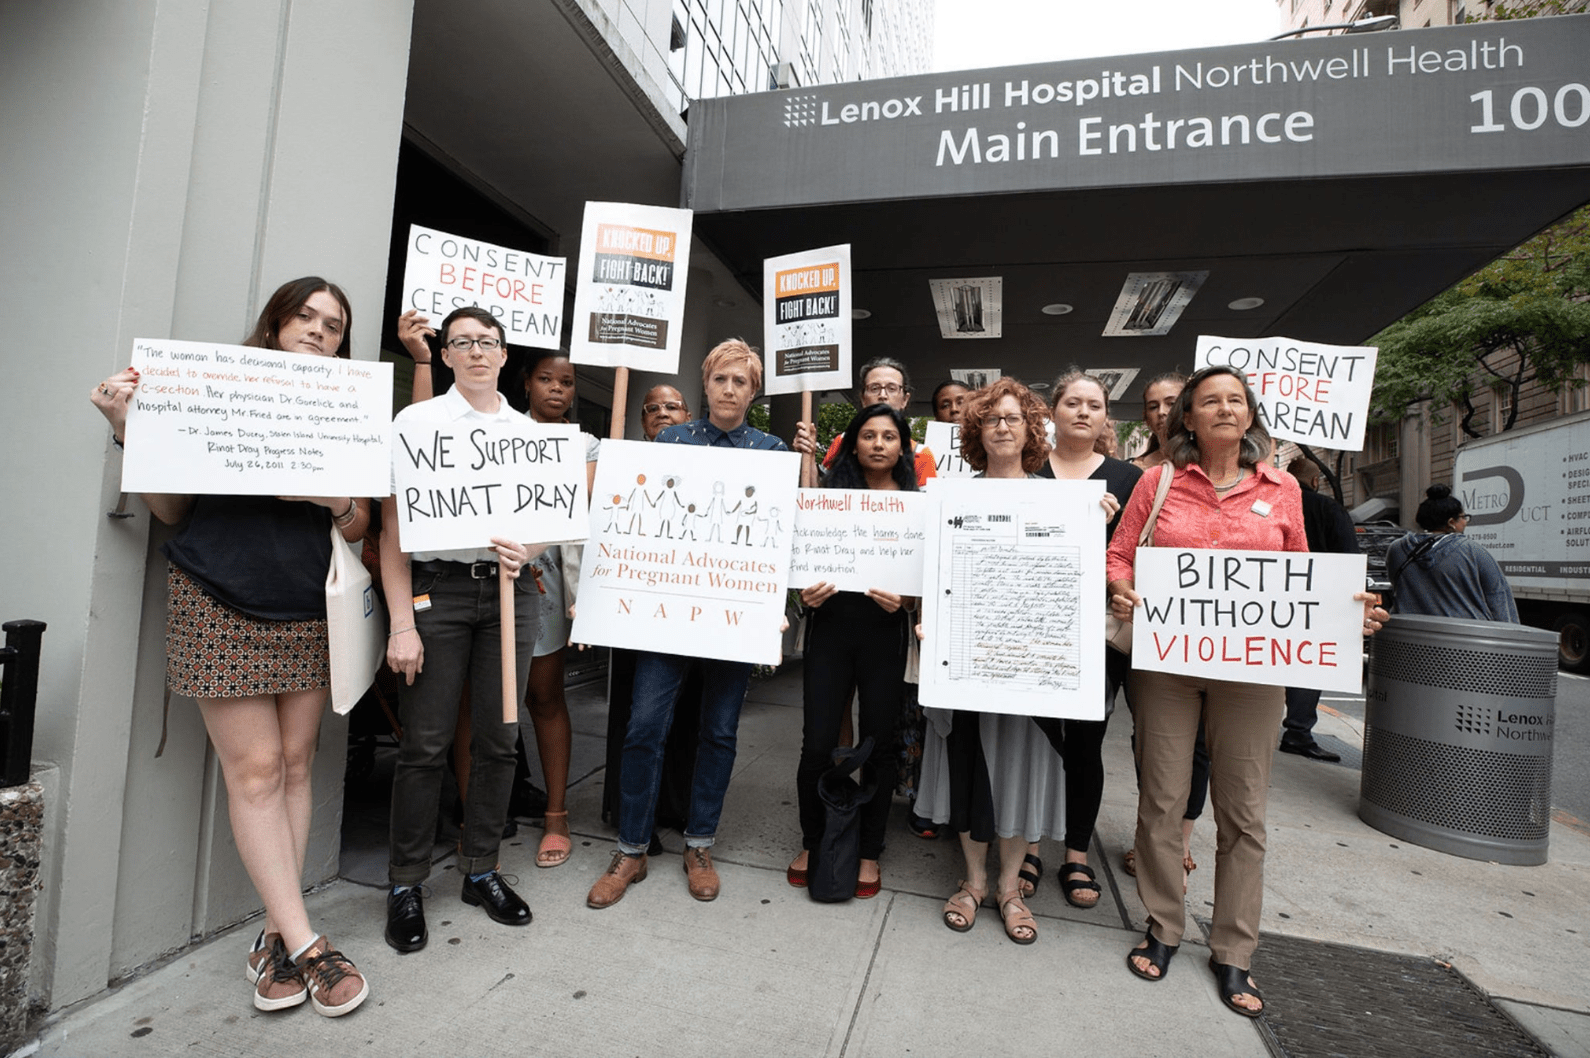 NAPW Activists Rally Against Northwell Health